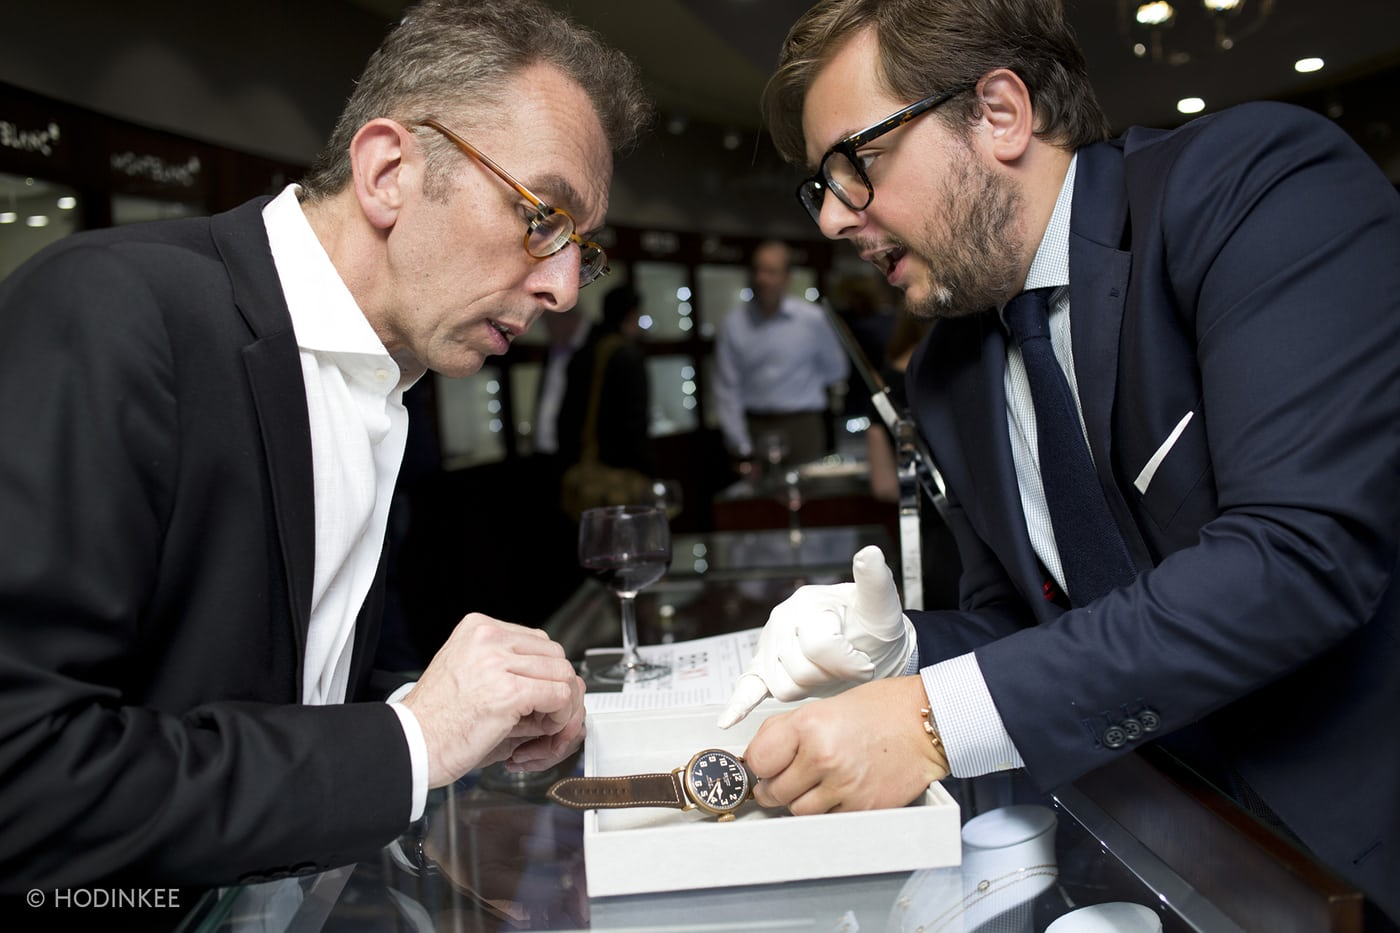 Manfredi Jewels Customers Photo by Hodinkee